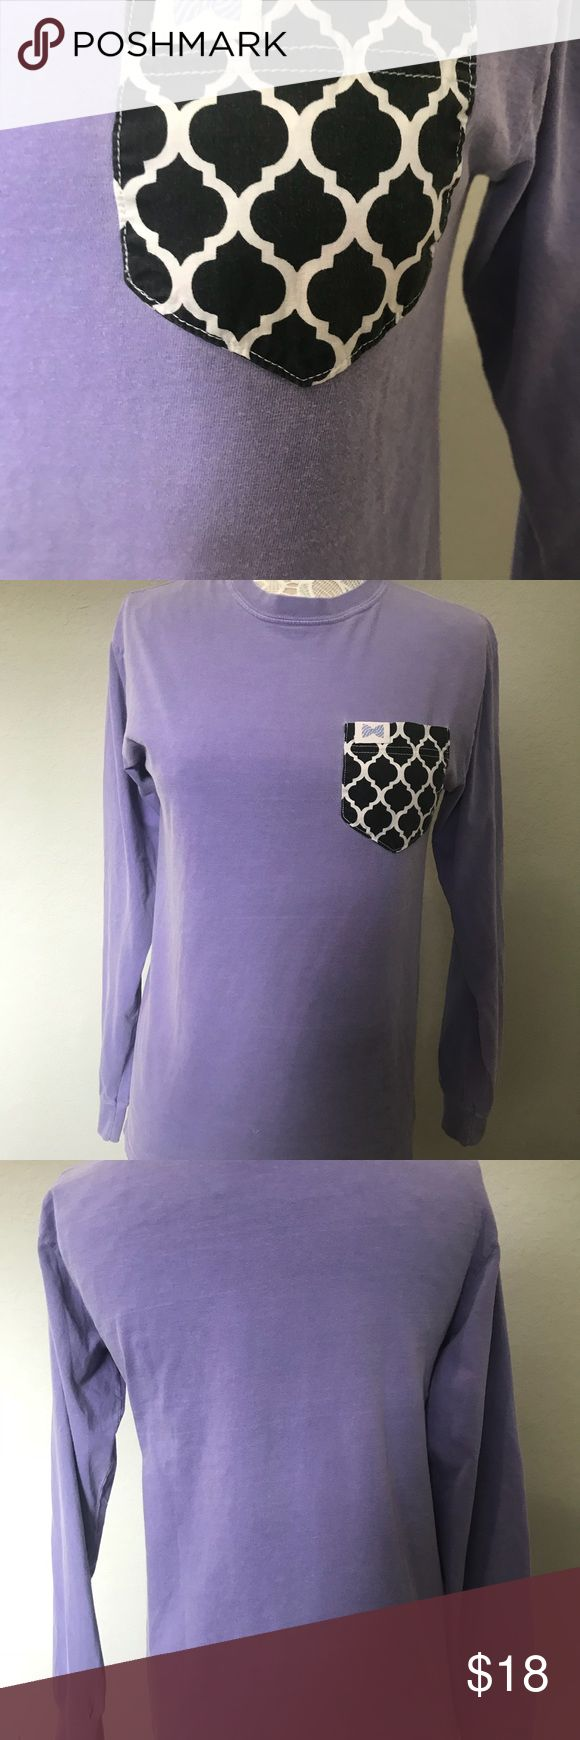 Longsleeve fraternity collection size small Lavender long sleeve T-shirt from fraternity collection size small, 100% cotton front pocket has black and white keyhole design, gently worn no stains, Tops Tees - Long Sleeve